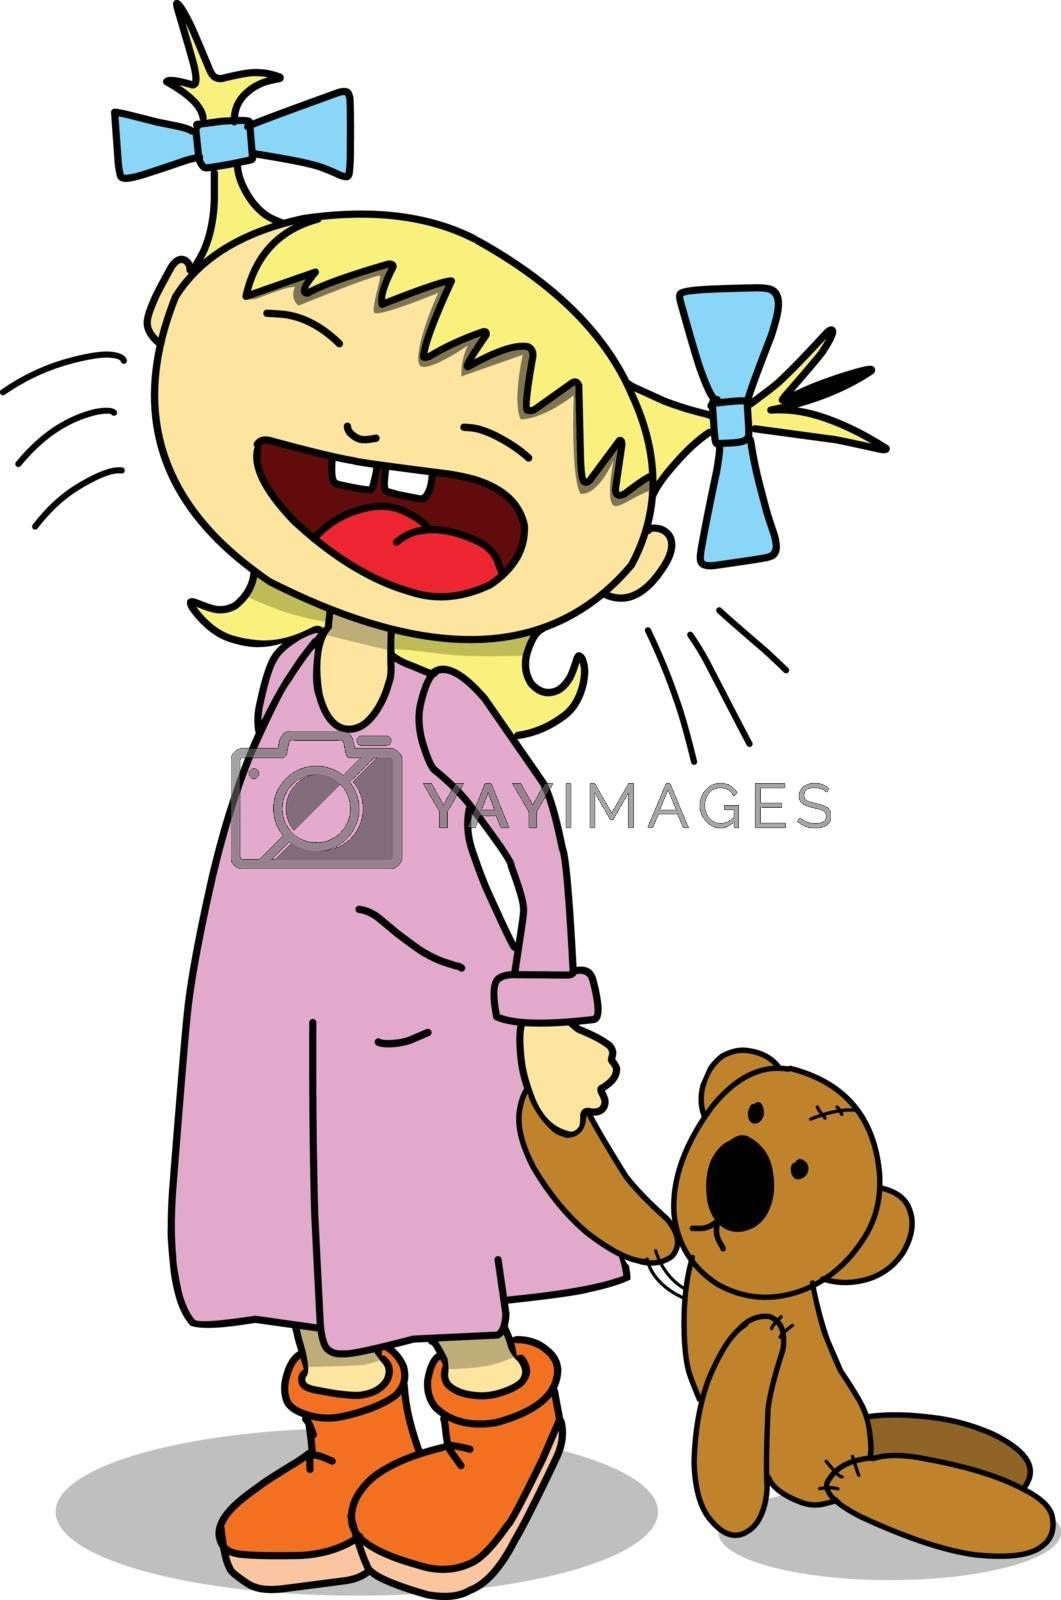 Stock Illustration Crying Girl With Teddy Bear on a White Background